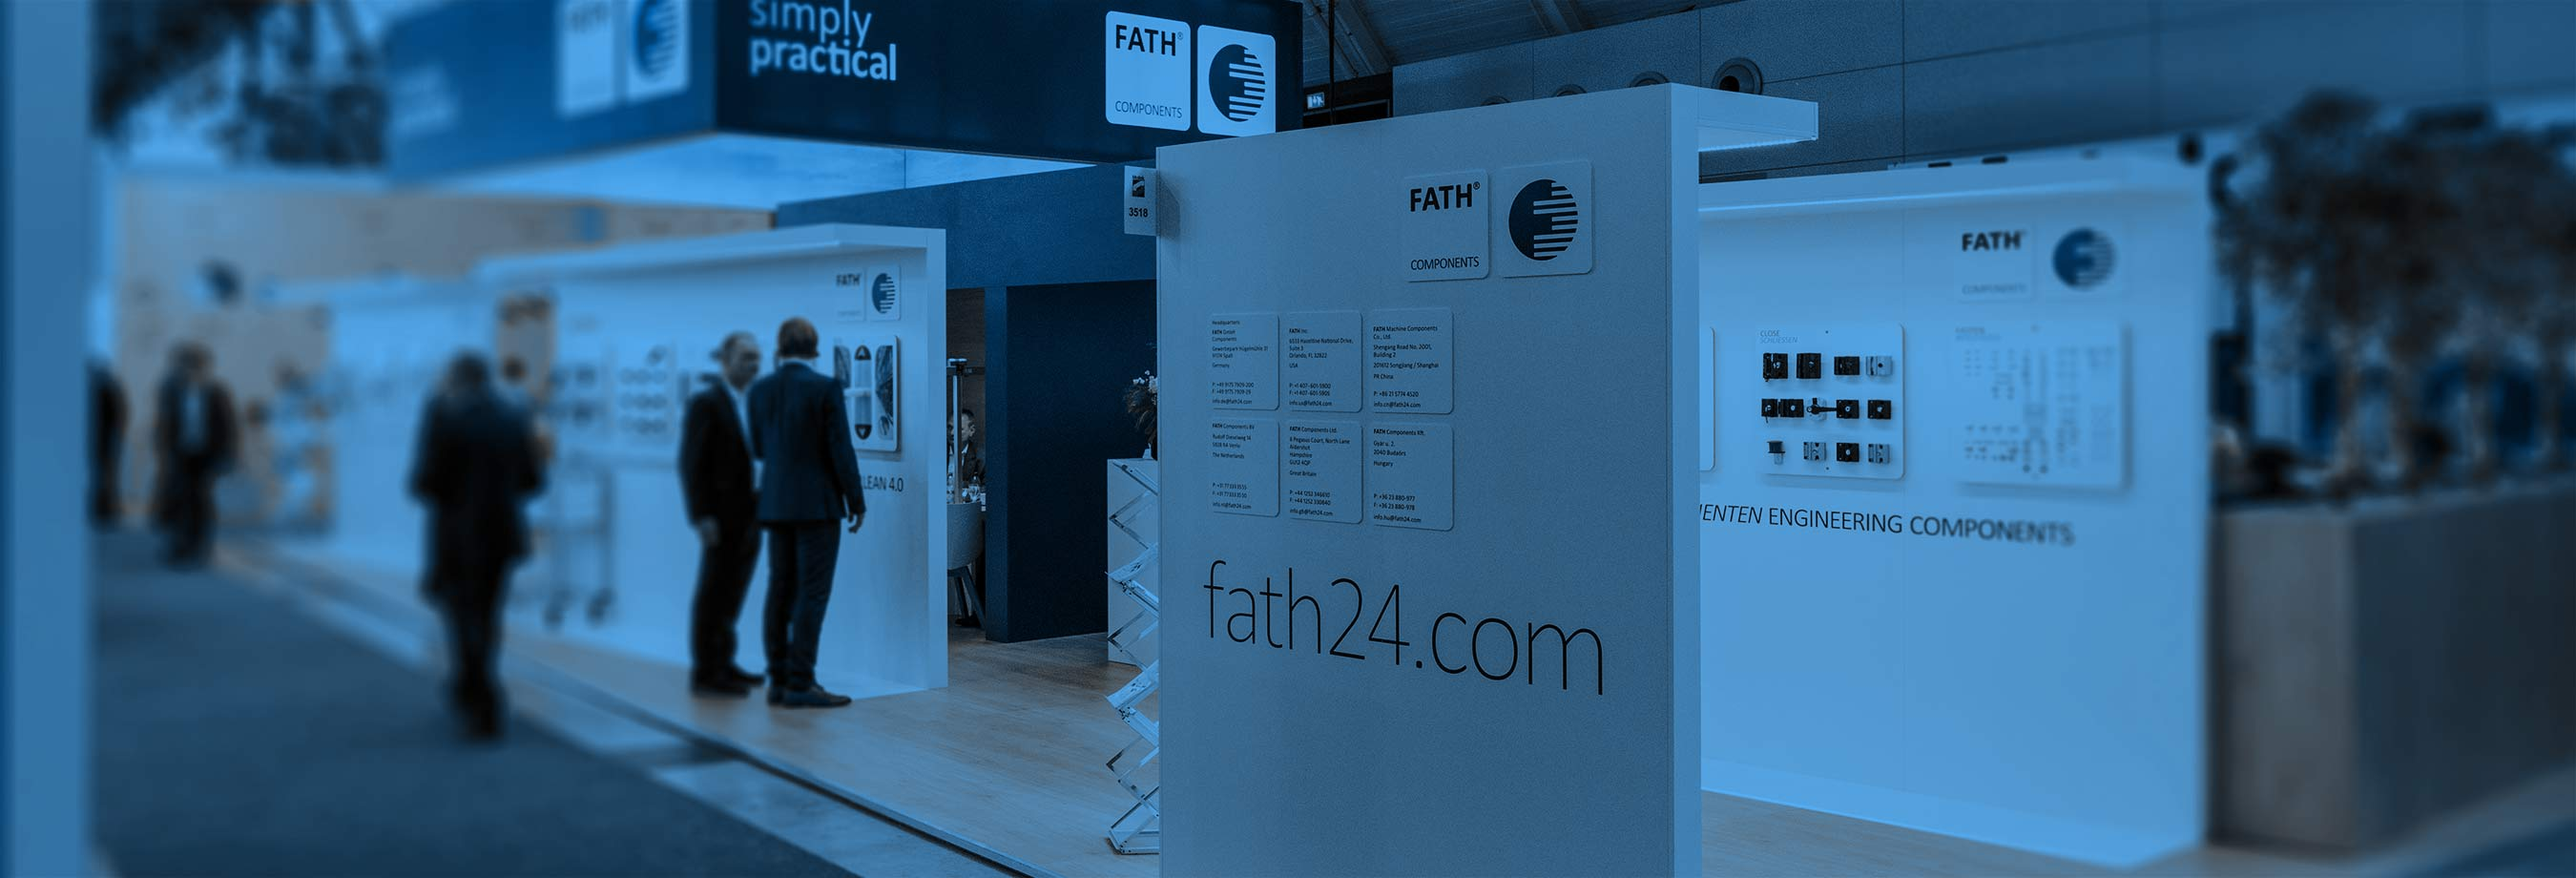 2020-03-03-FATH-header-trade-fairs-overview-2700x920-24-132kb